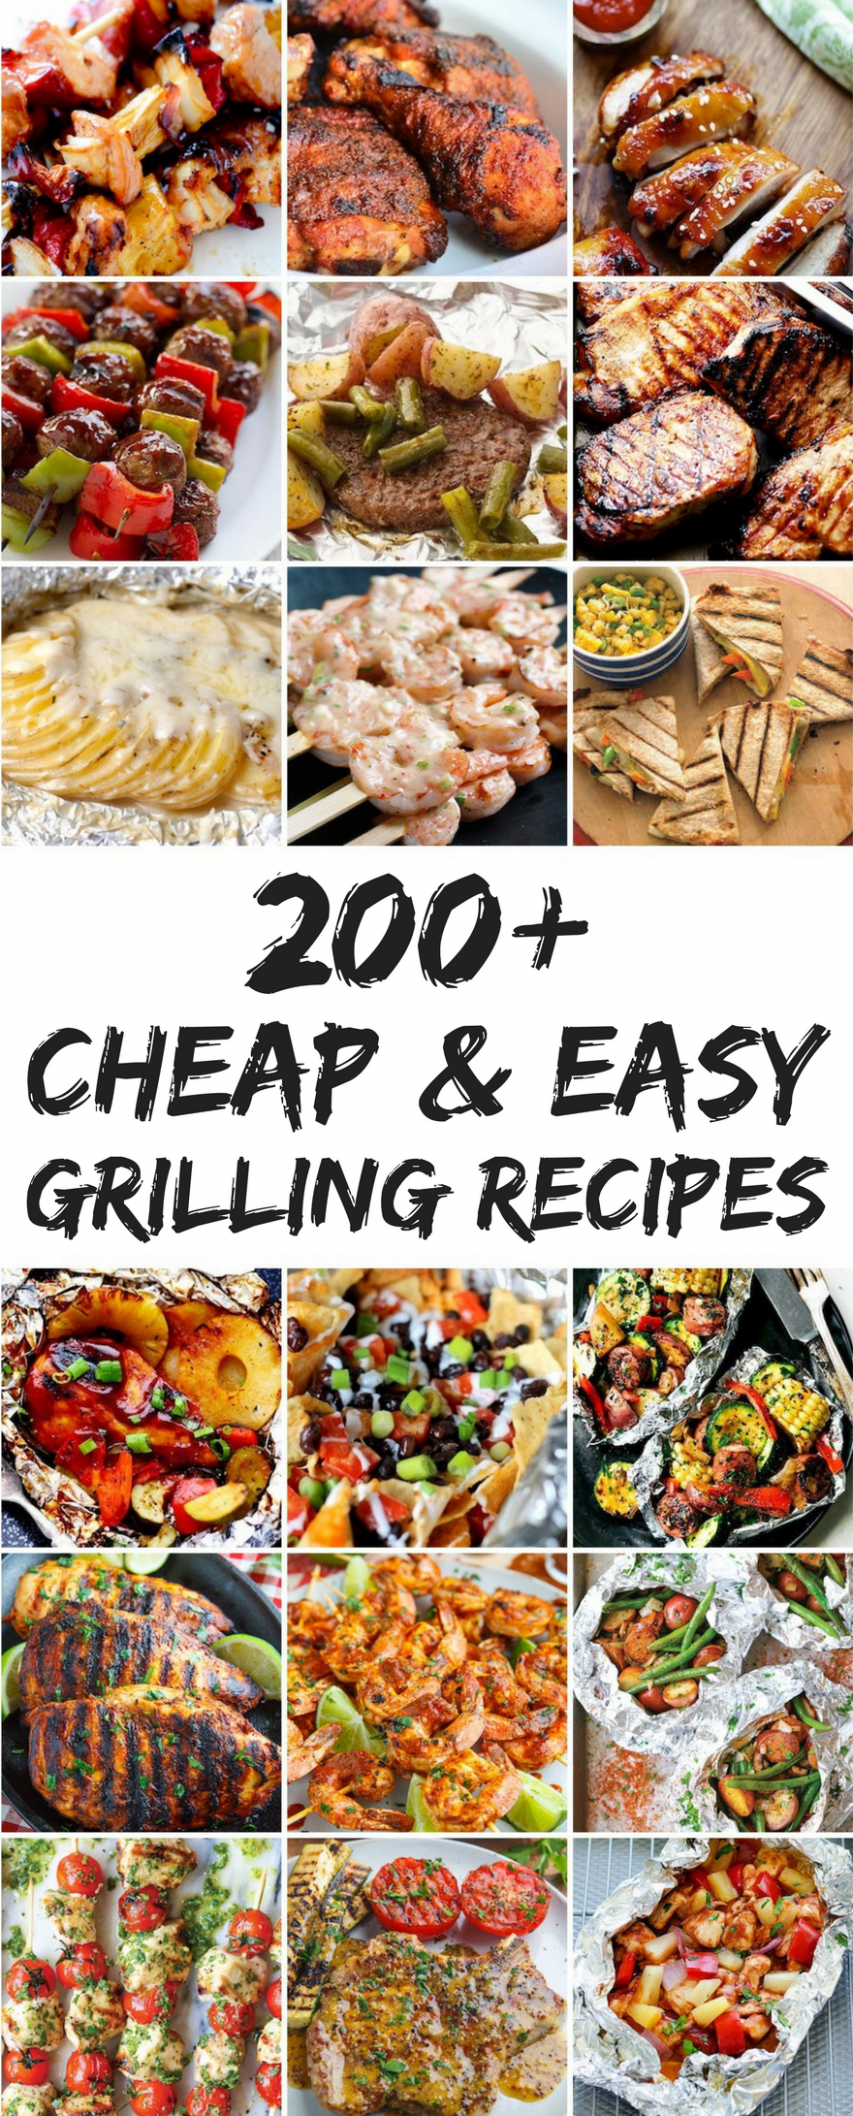 12 Cheap and Easy Grilling Recipes | Grilling recipes, Summer ...